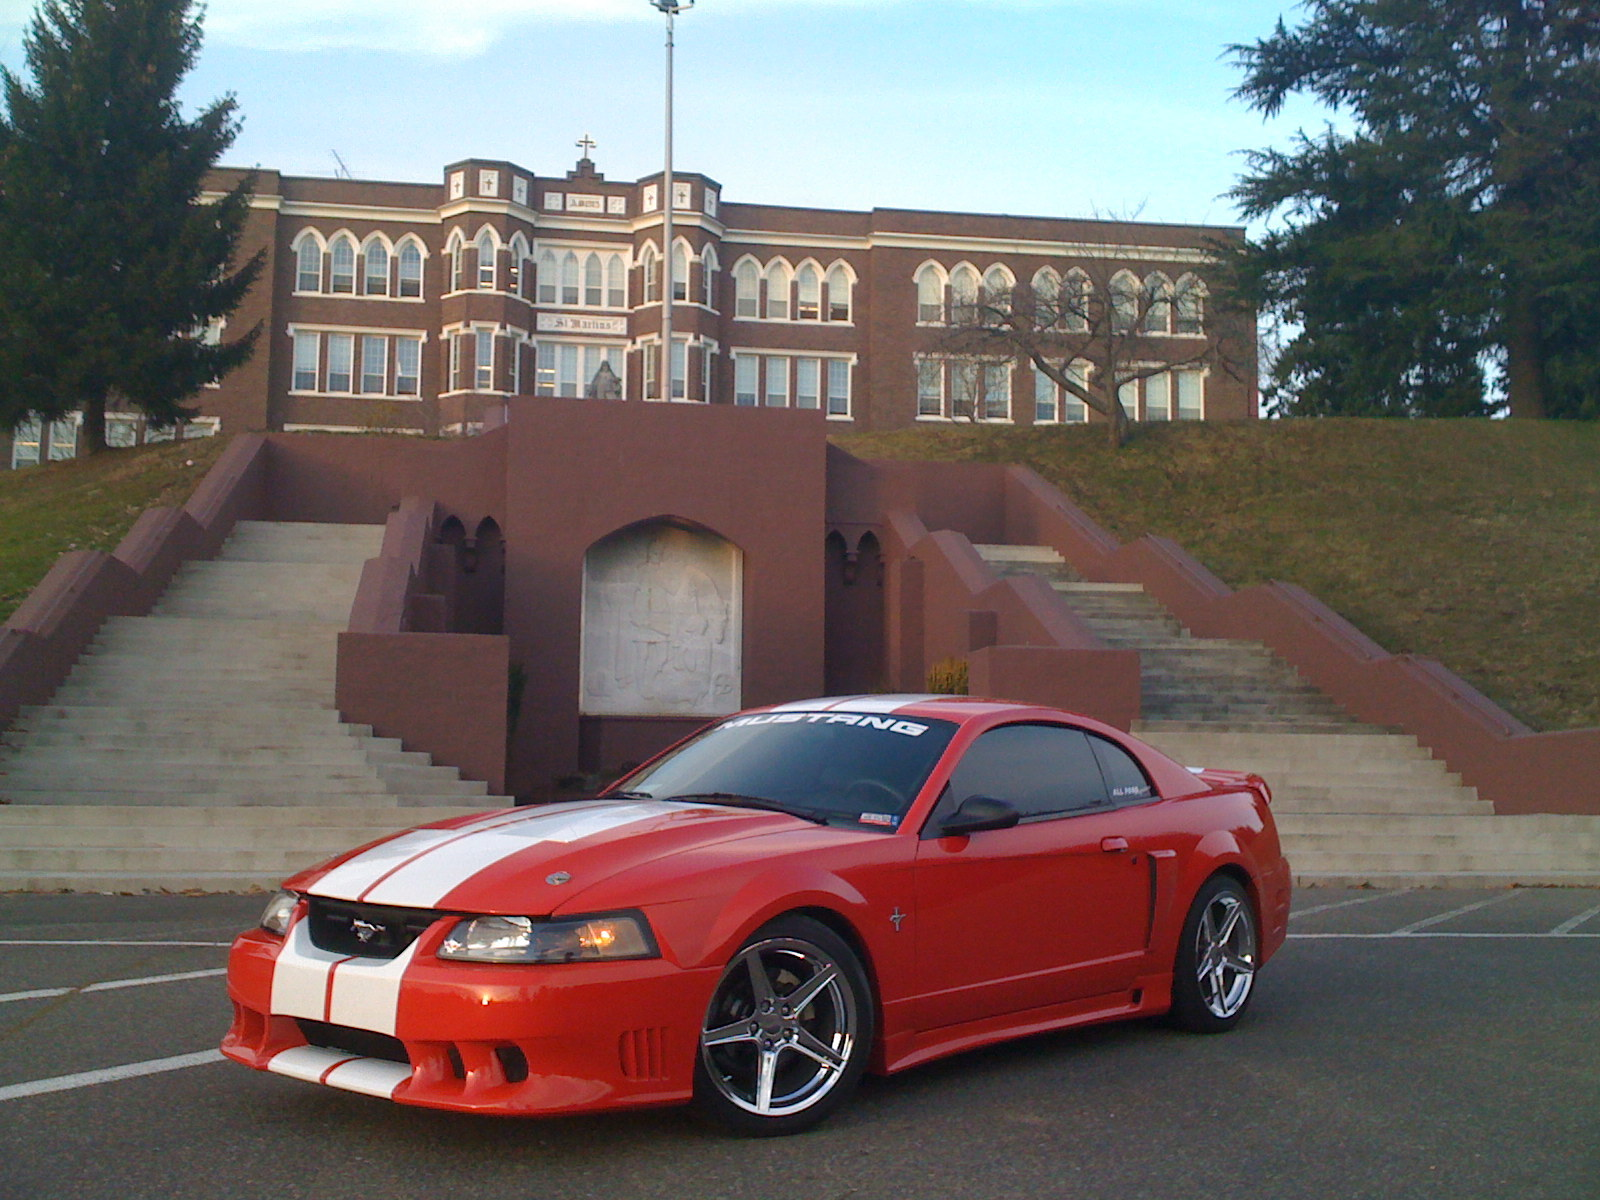 2002SaleenGT's 2002 Ford Mustang